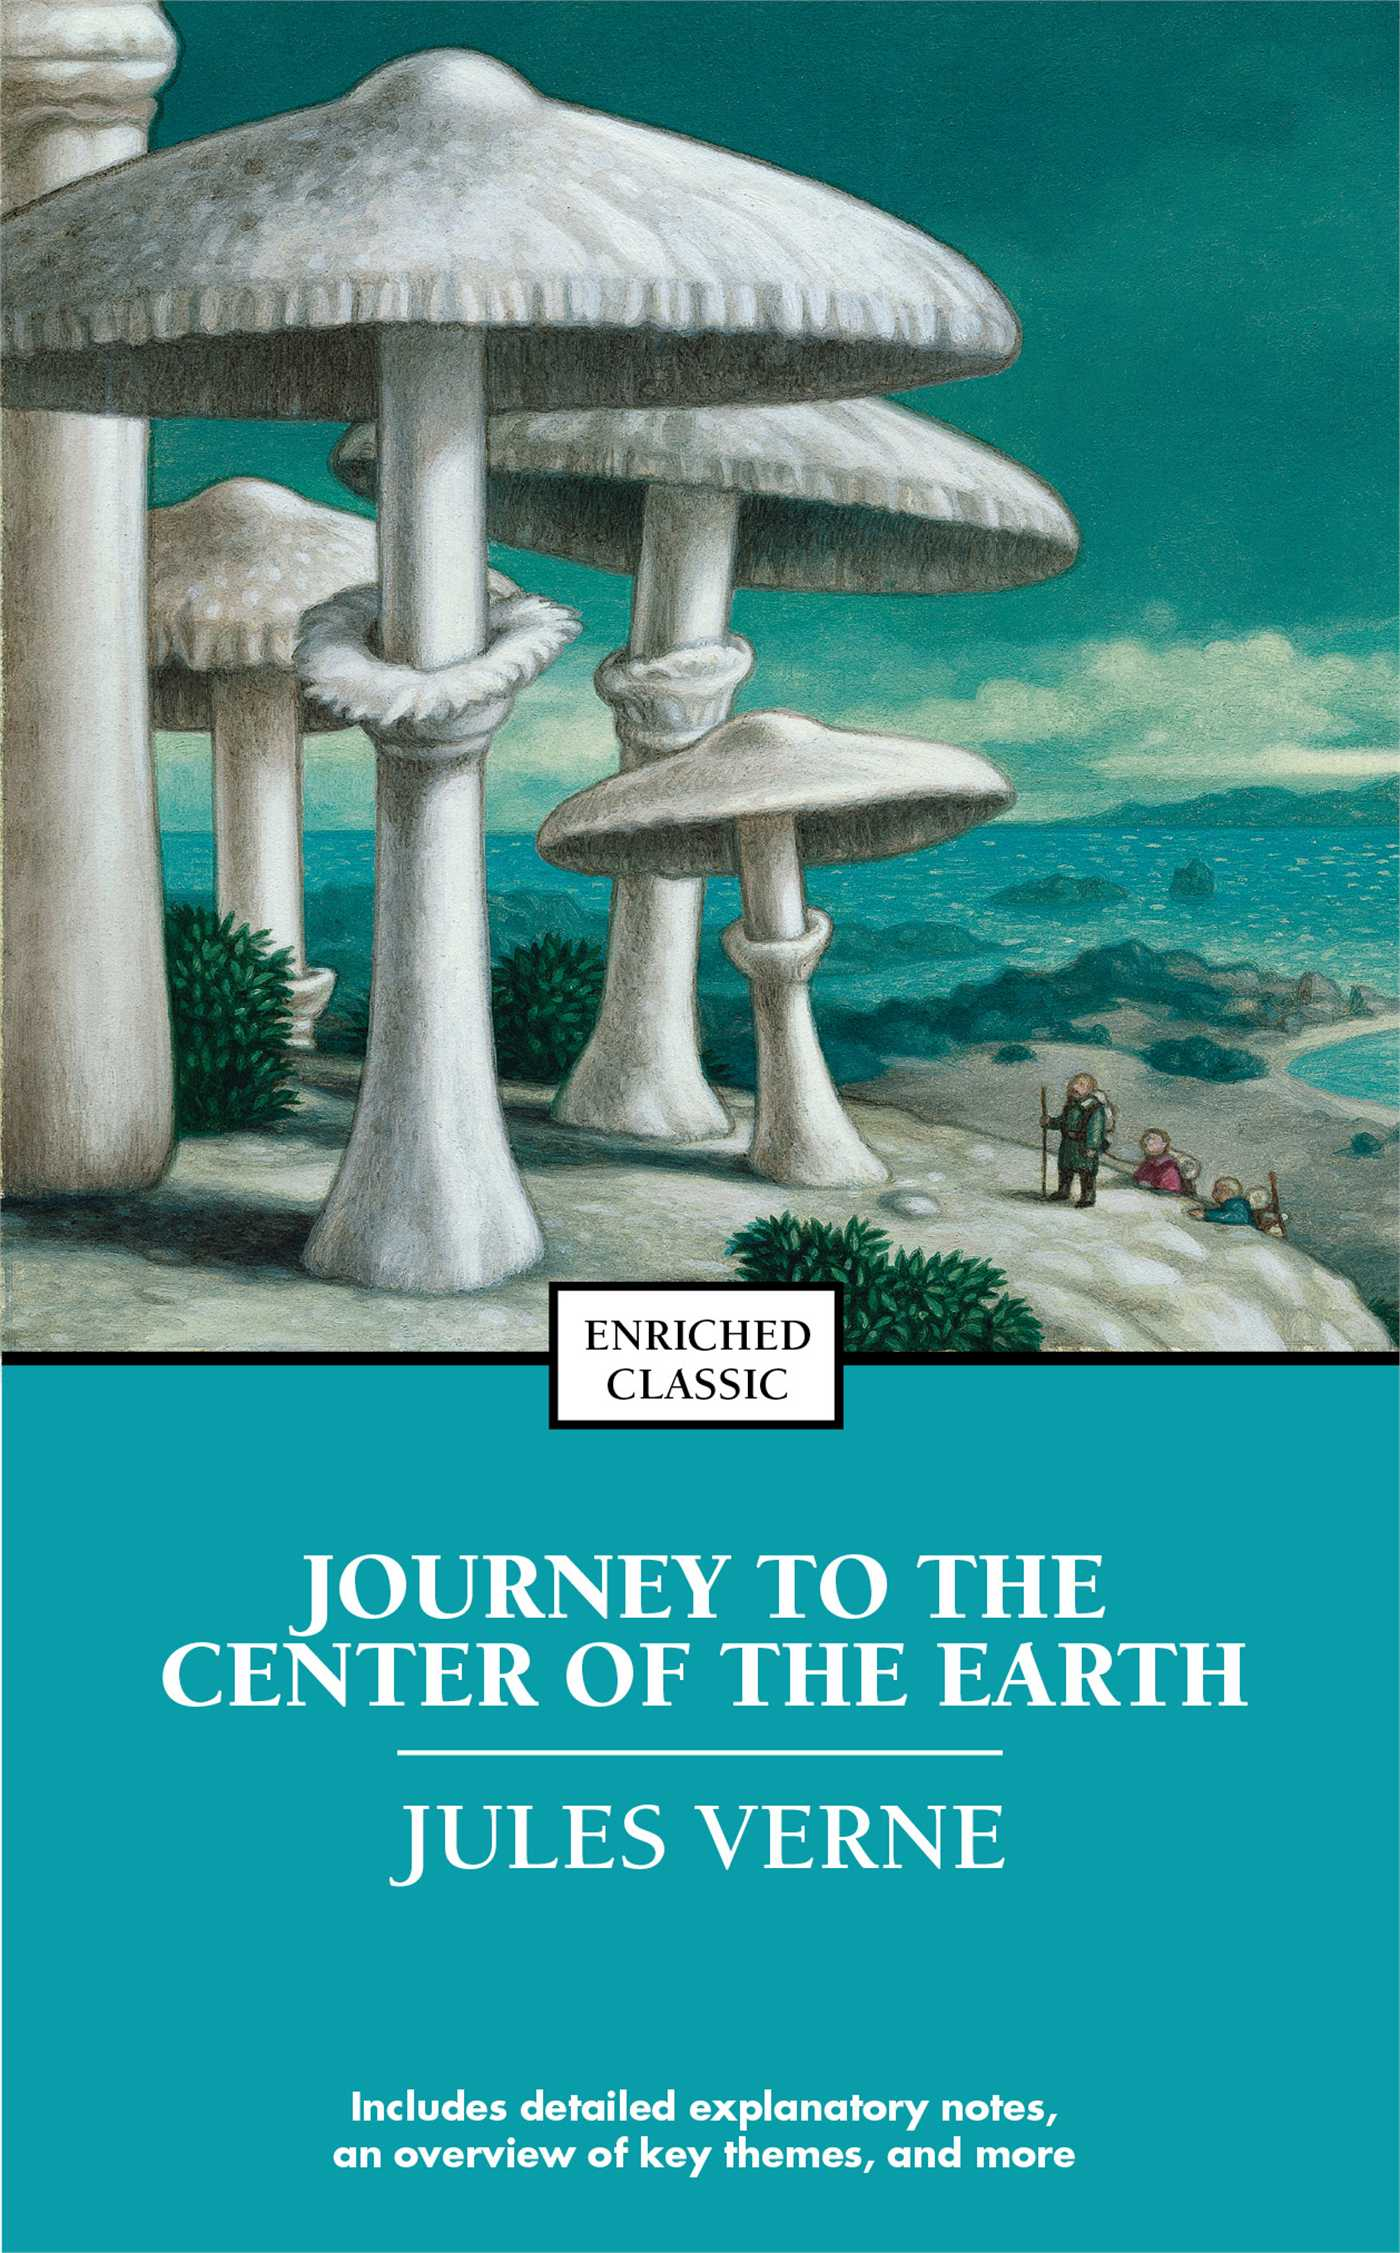 Image result for journey to the center of the earth book covers